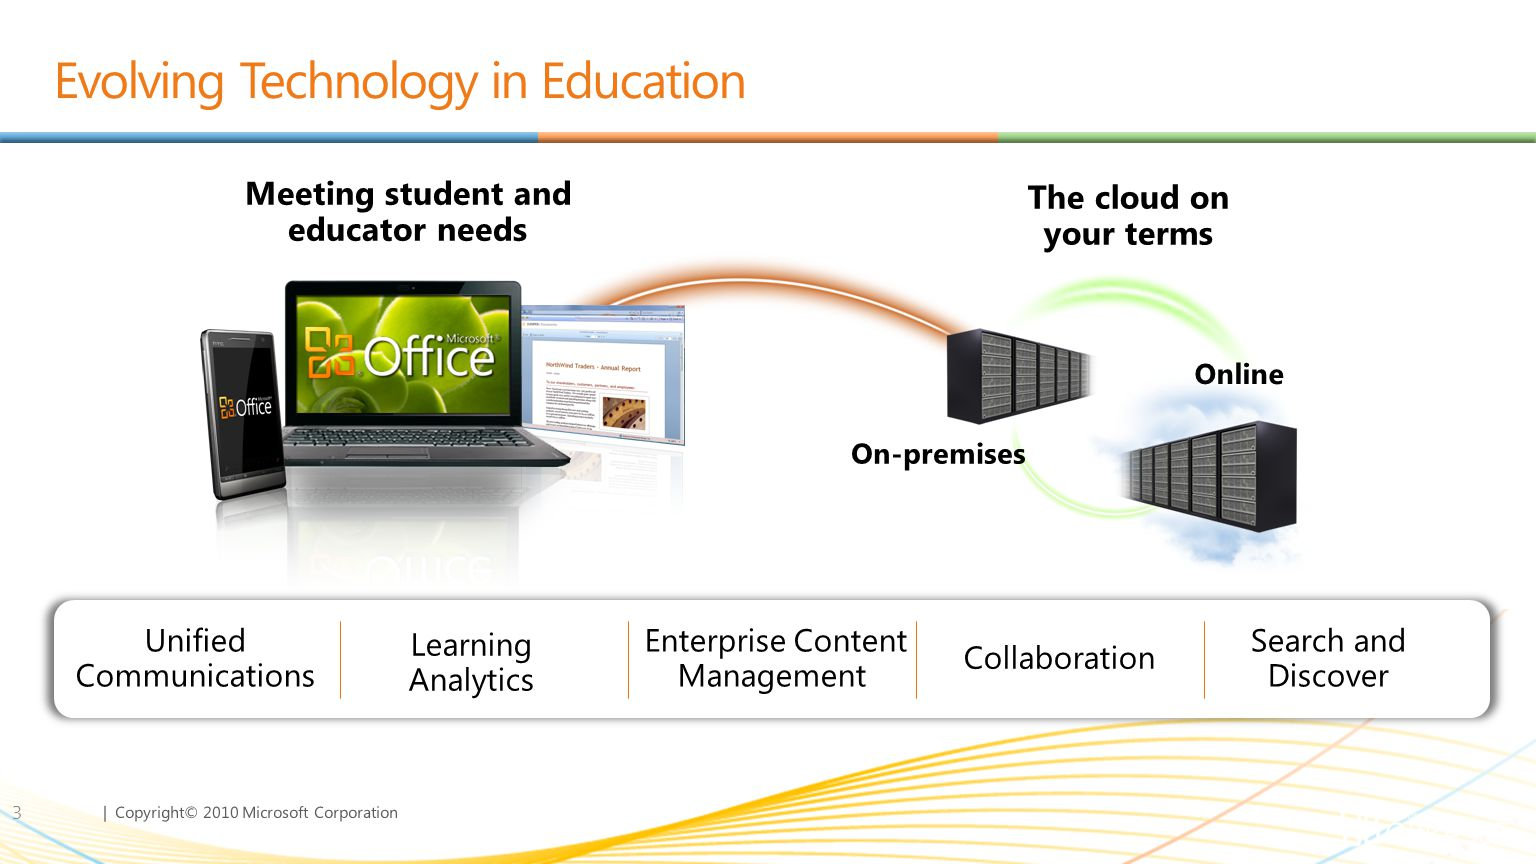 Evolving Technology in Education